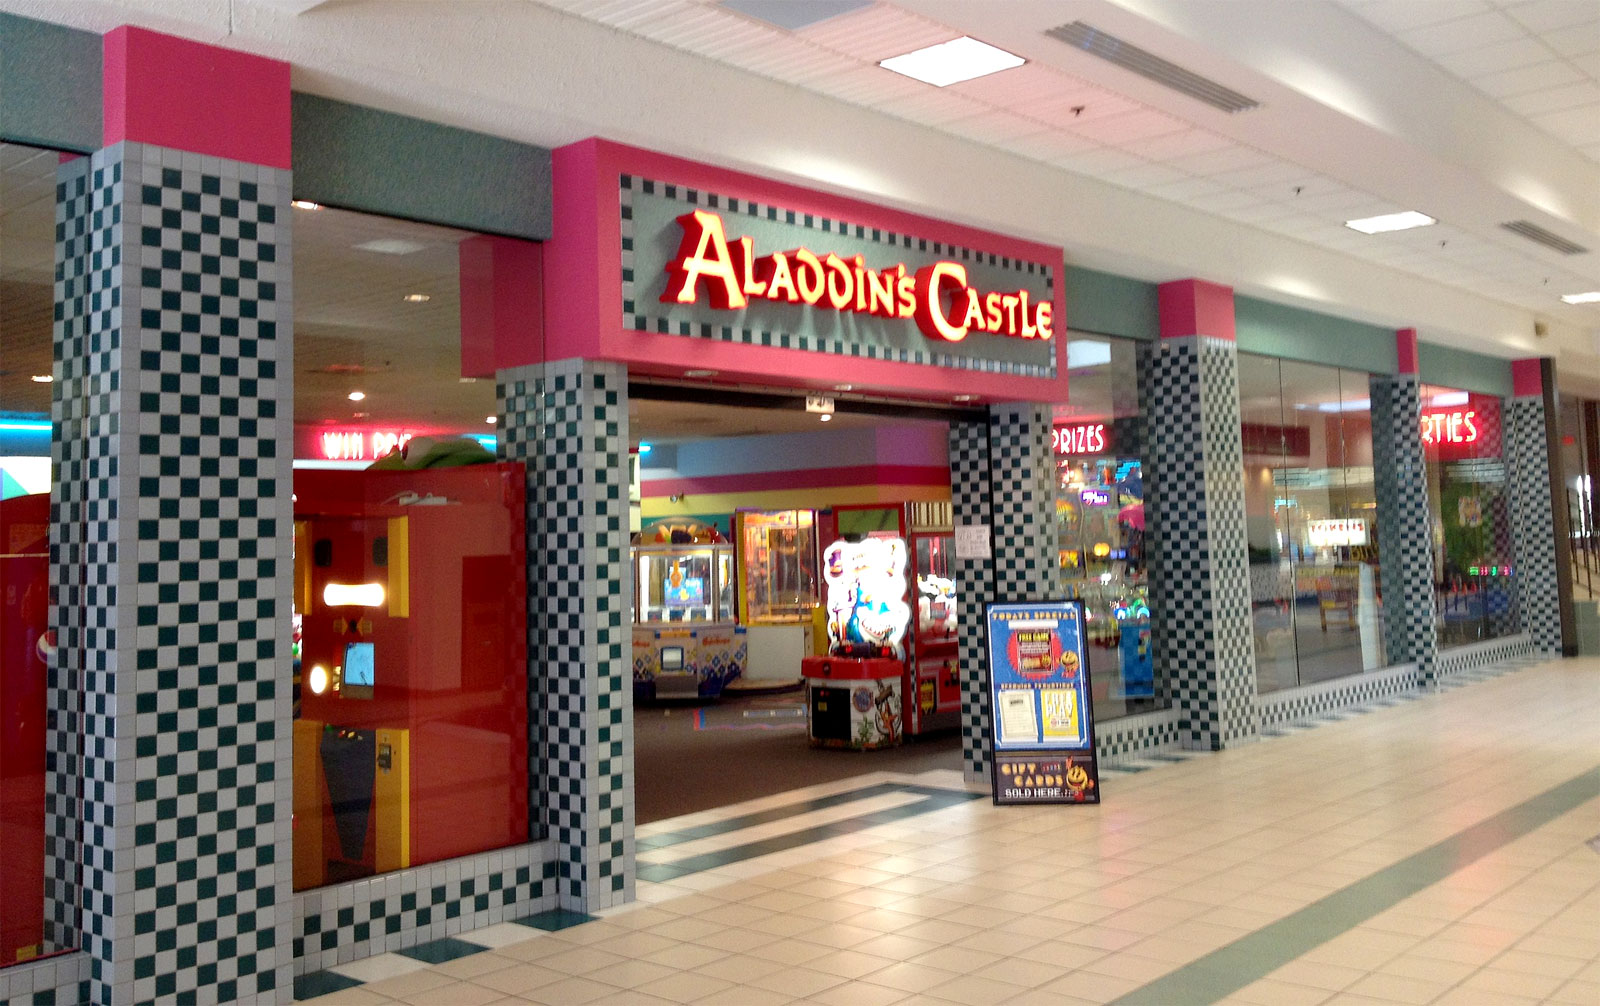 Aladdins Castle Arcade at the mall